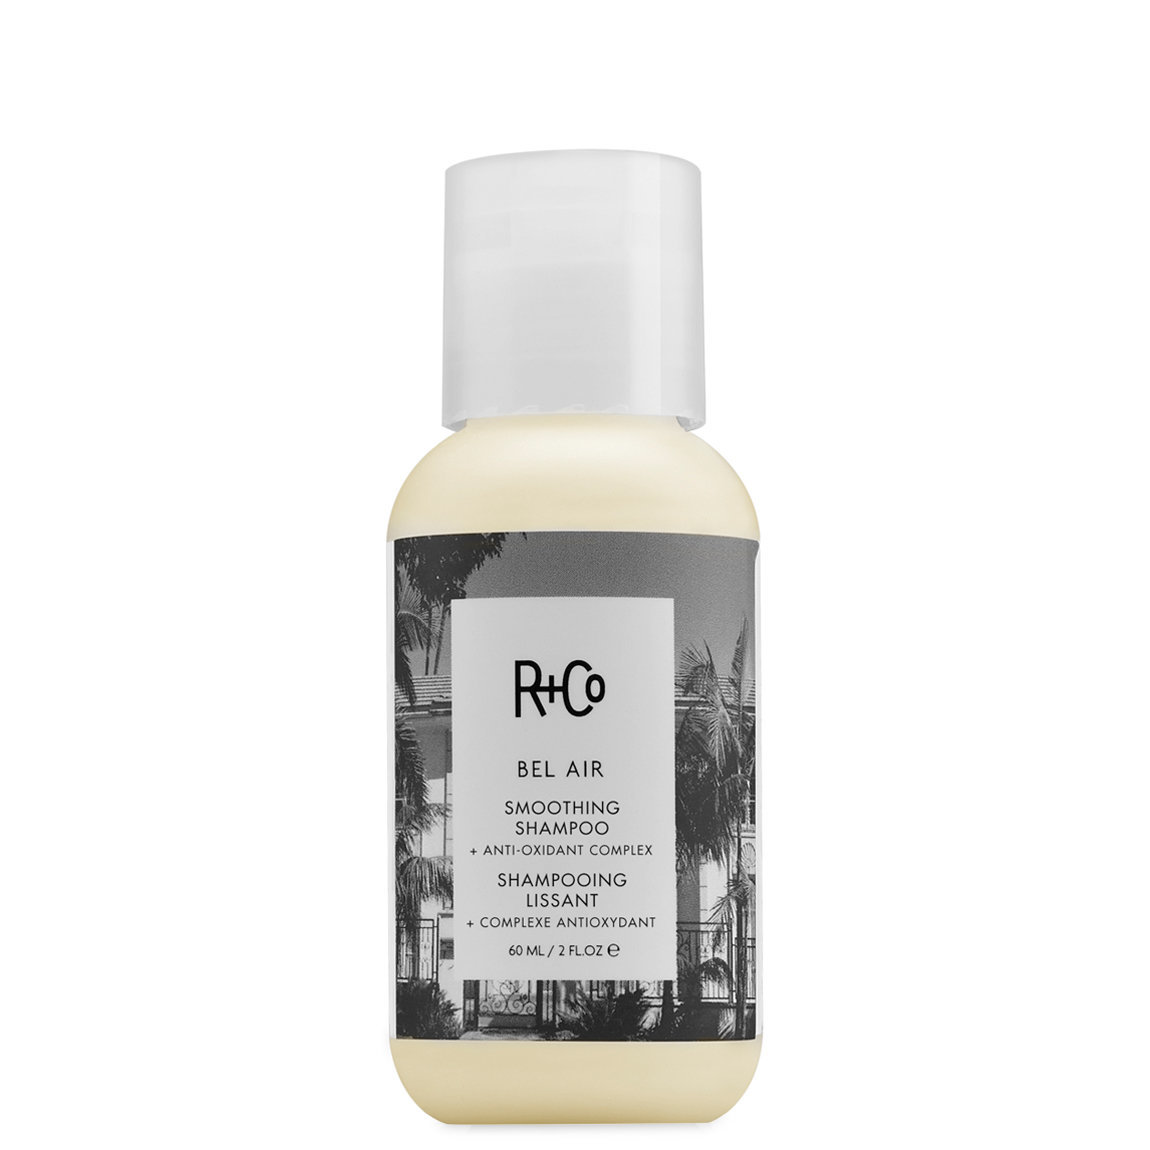 R+Co Bel Air Smoothing Shampoo + Anti-Oxidant Complex 2 oz alternative view 1 - product swatch.